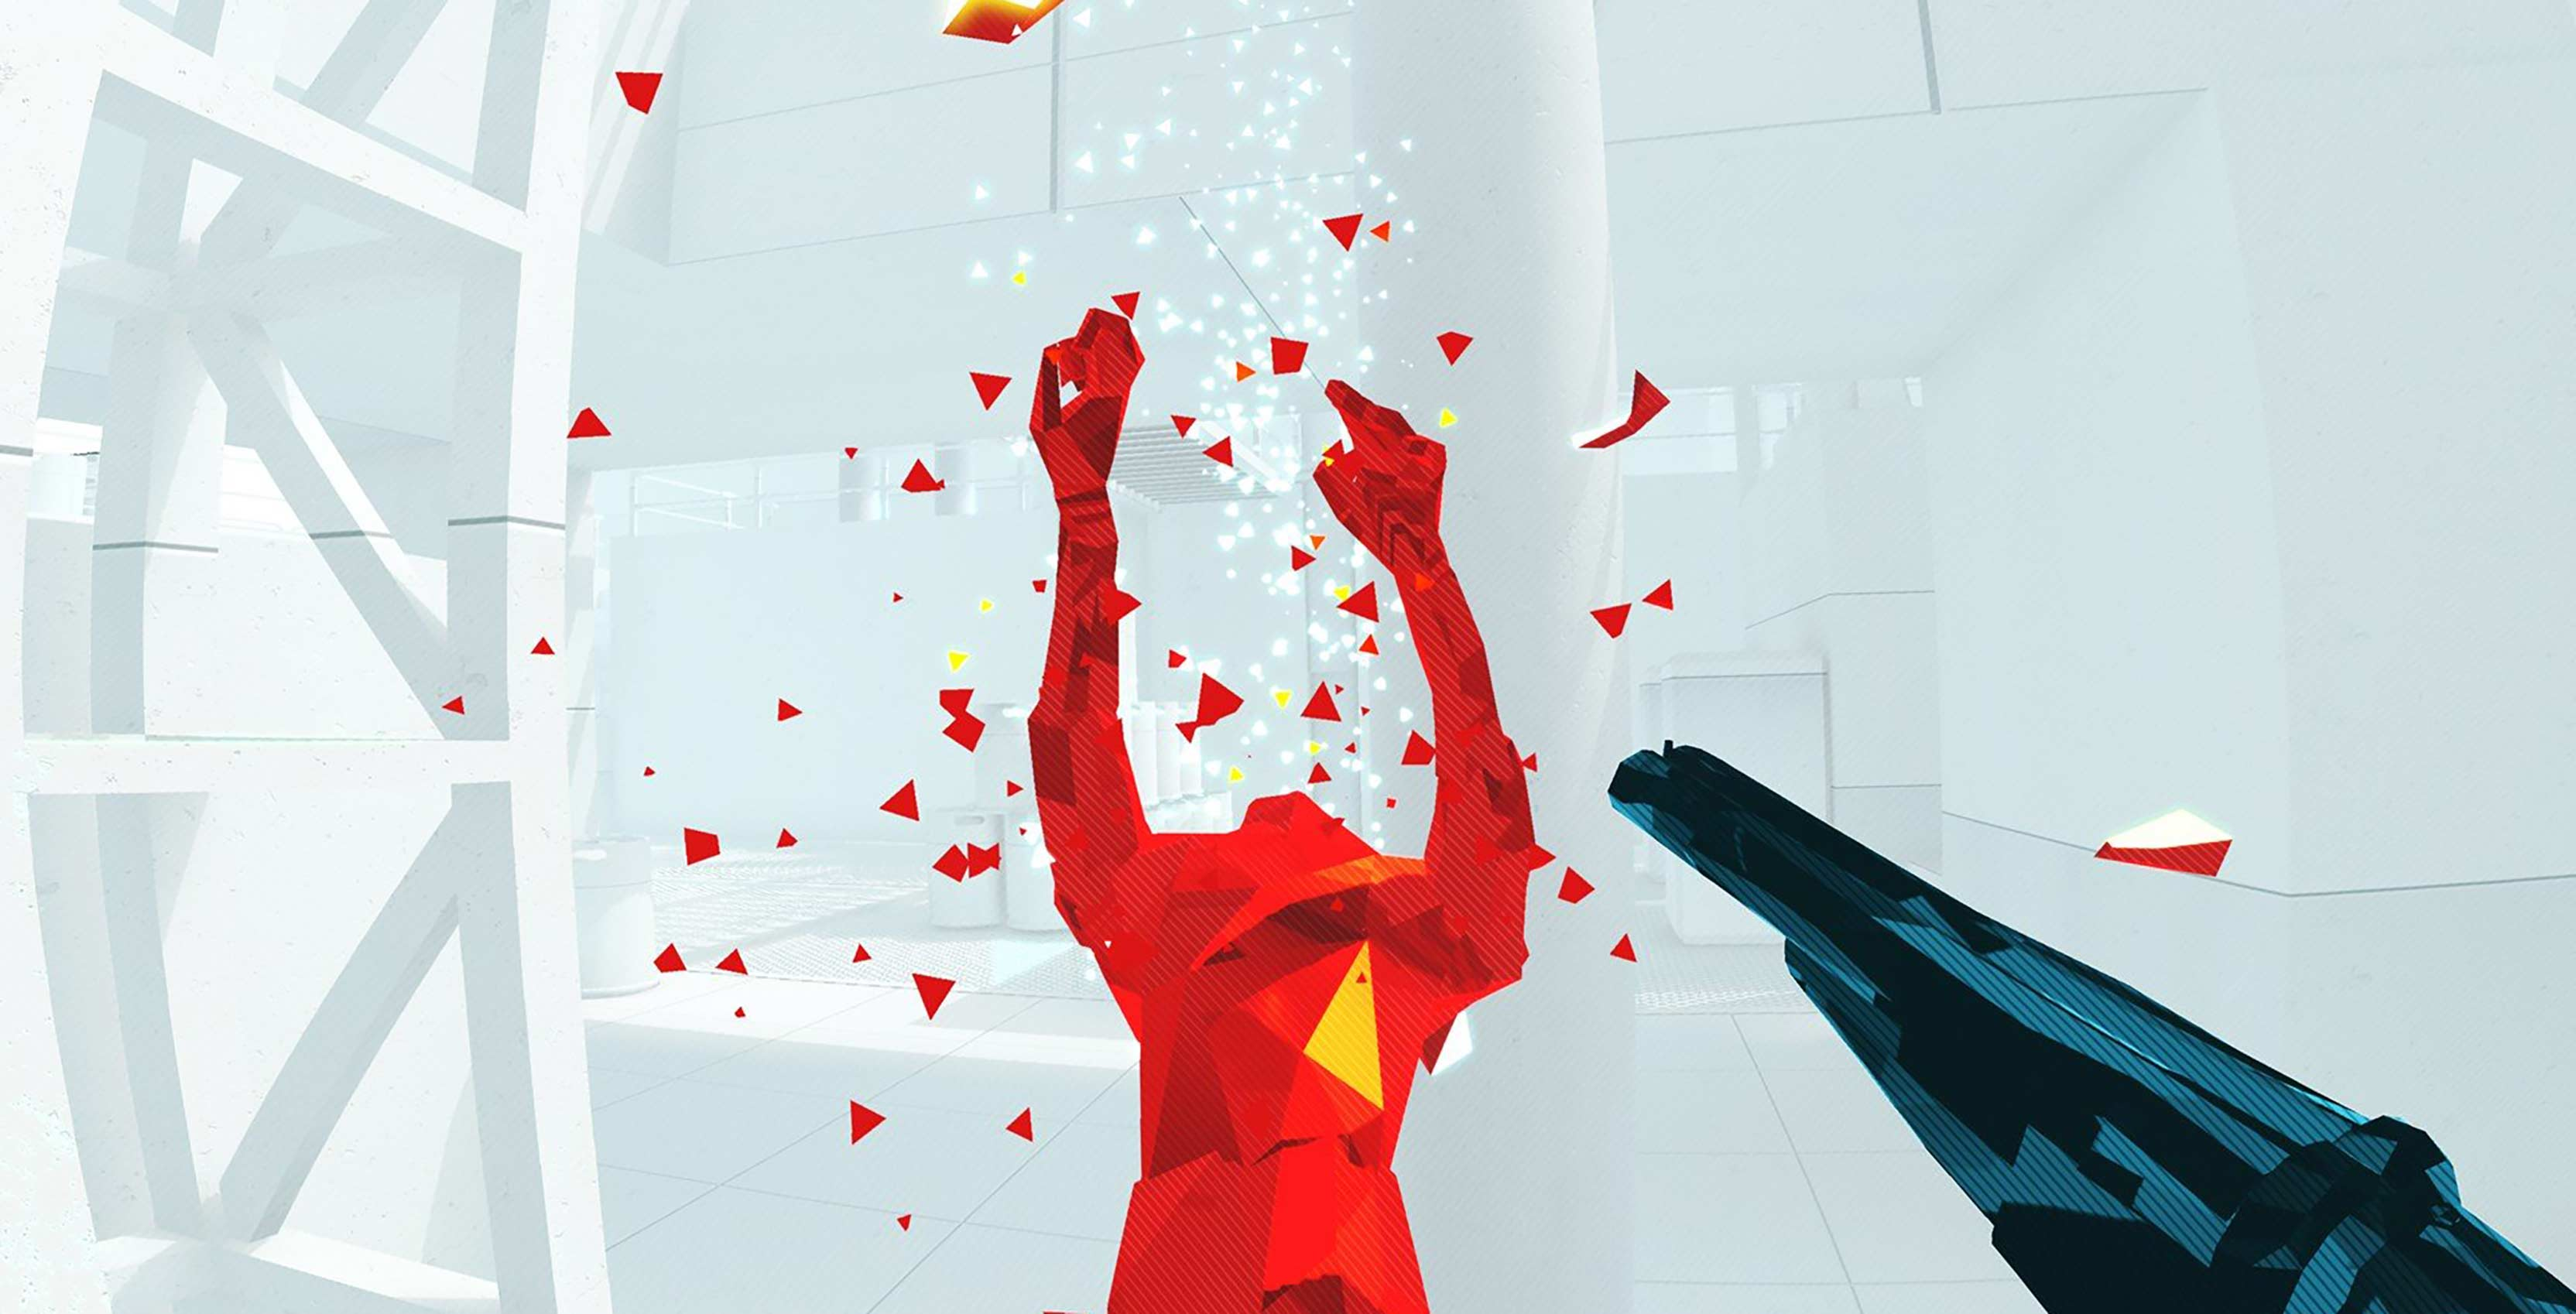 Superhot VR gunplay